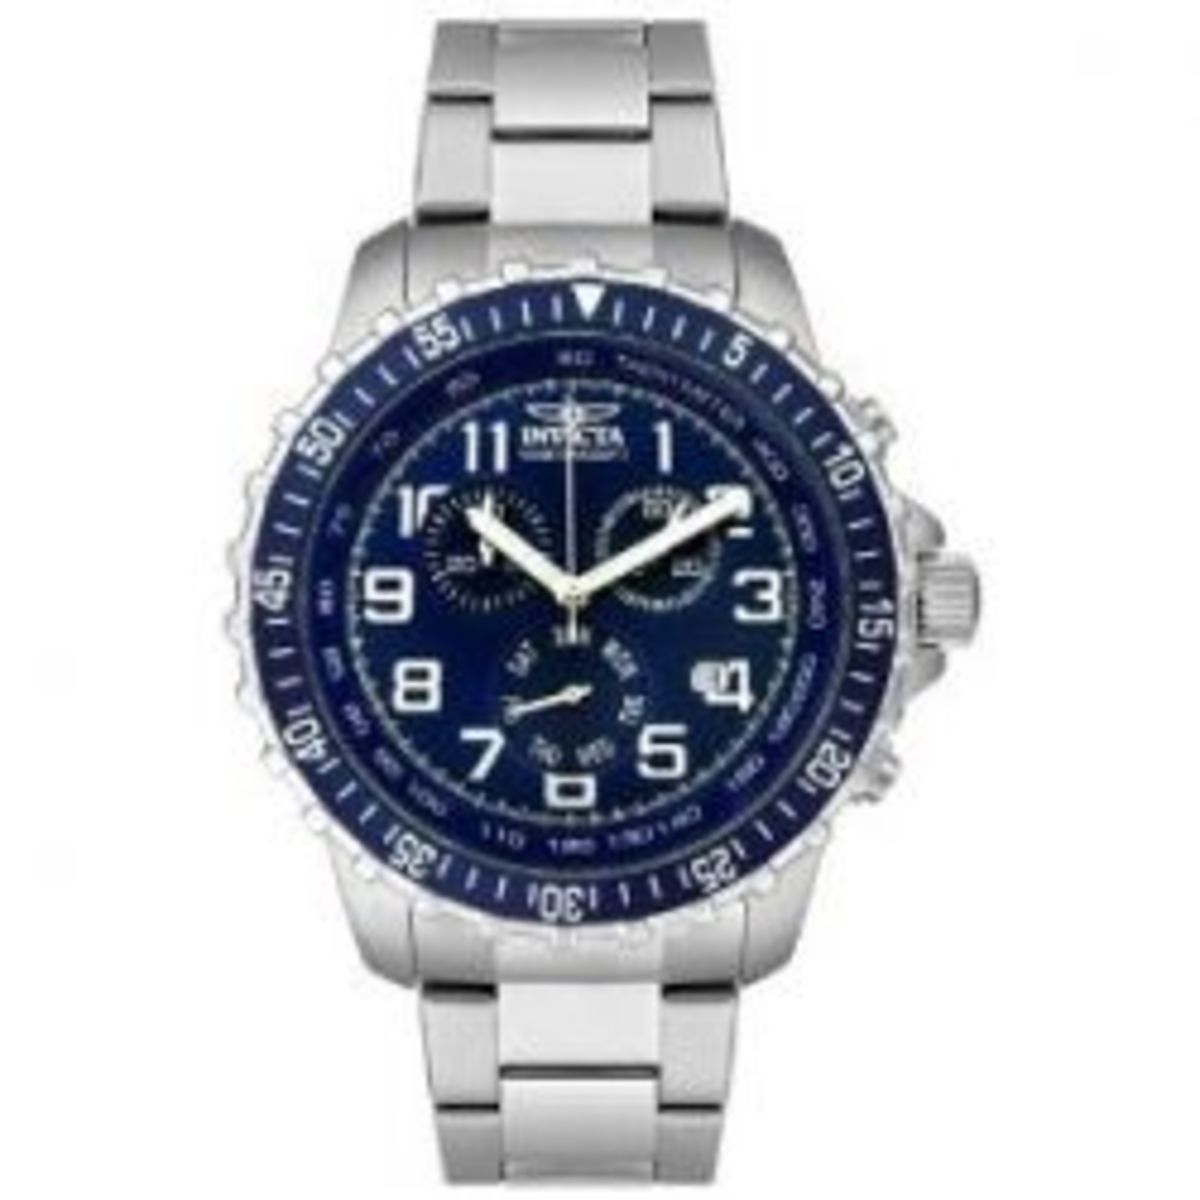 Invicta Men's II Collection Chronograph Stainless Steel Blue Dial.